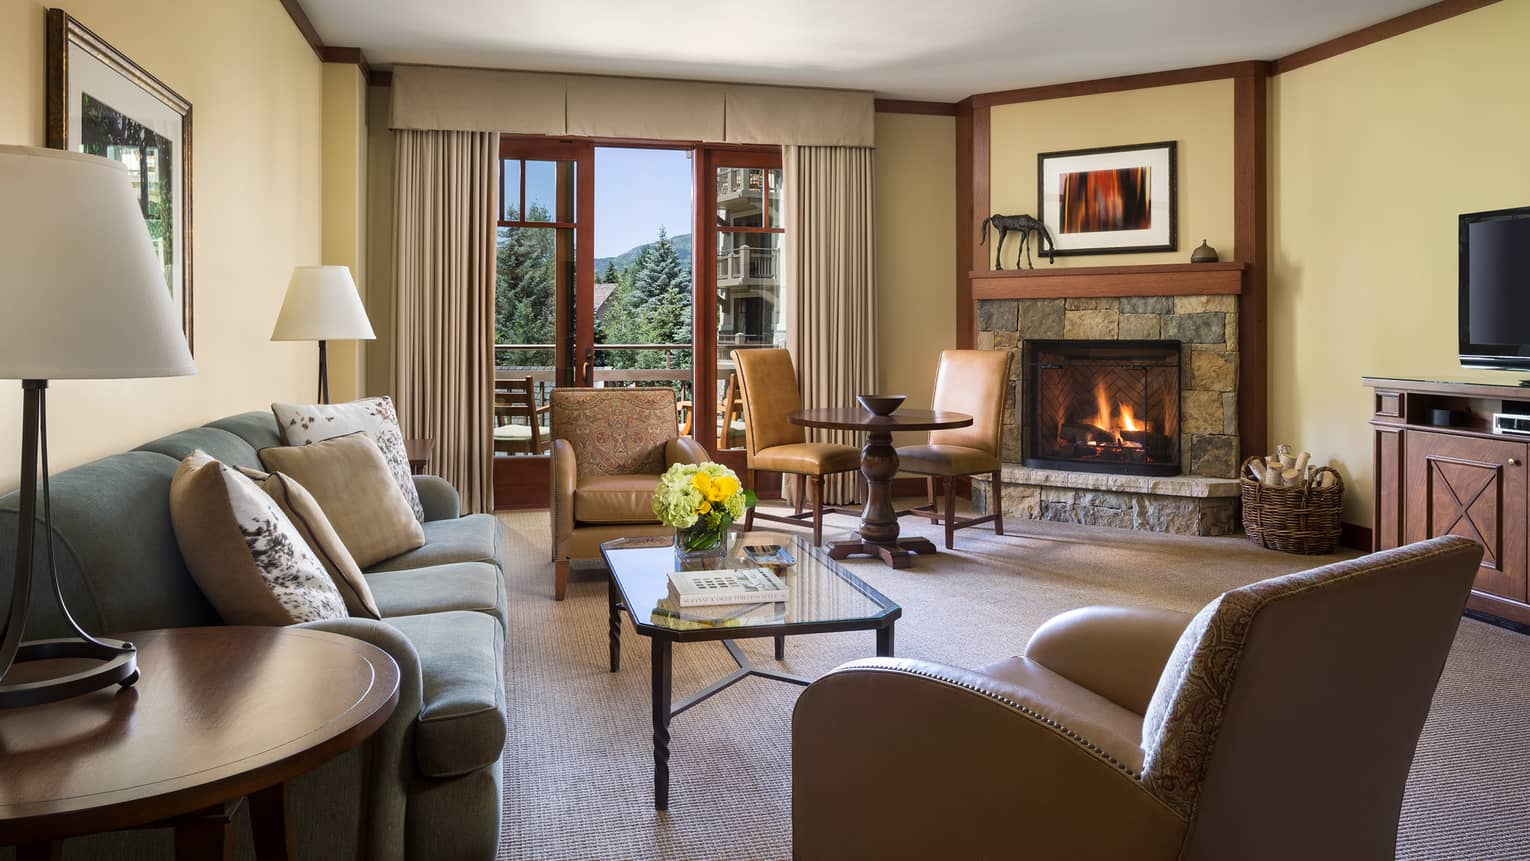 Deluxe Mountain-View One-Bedroom Suite separate living area with sofa, 2-seat dining table, fireplace